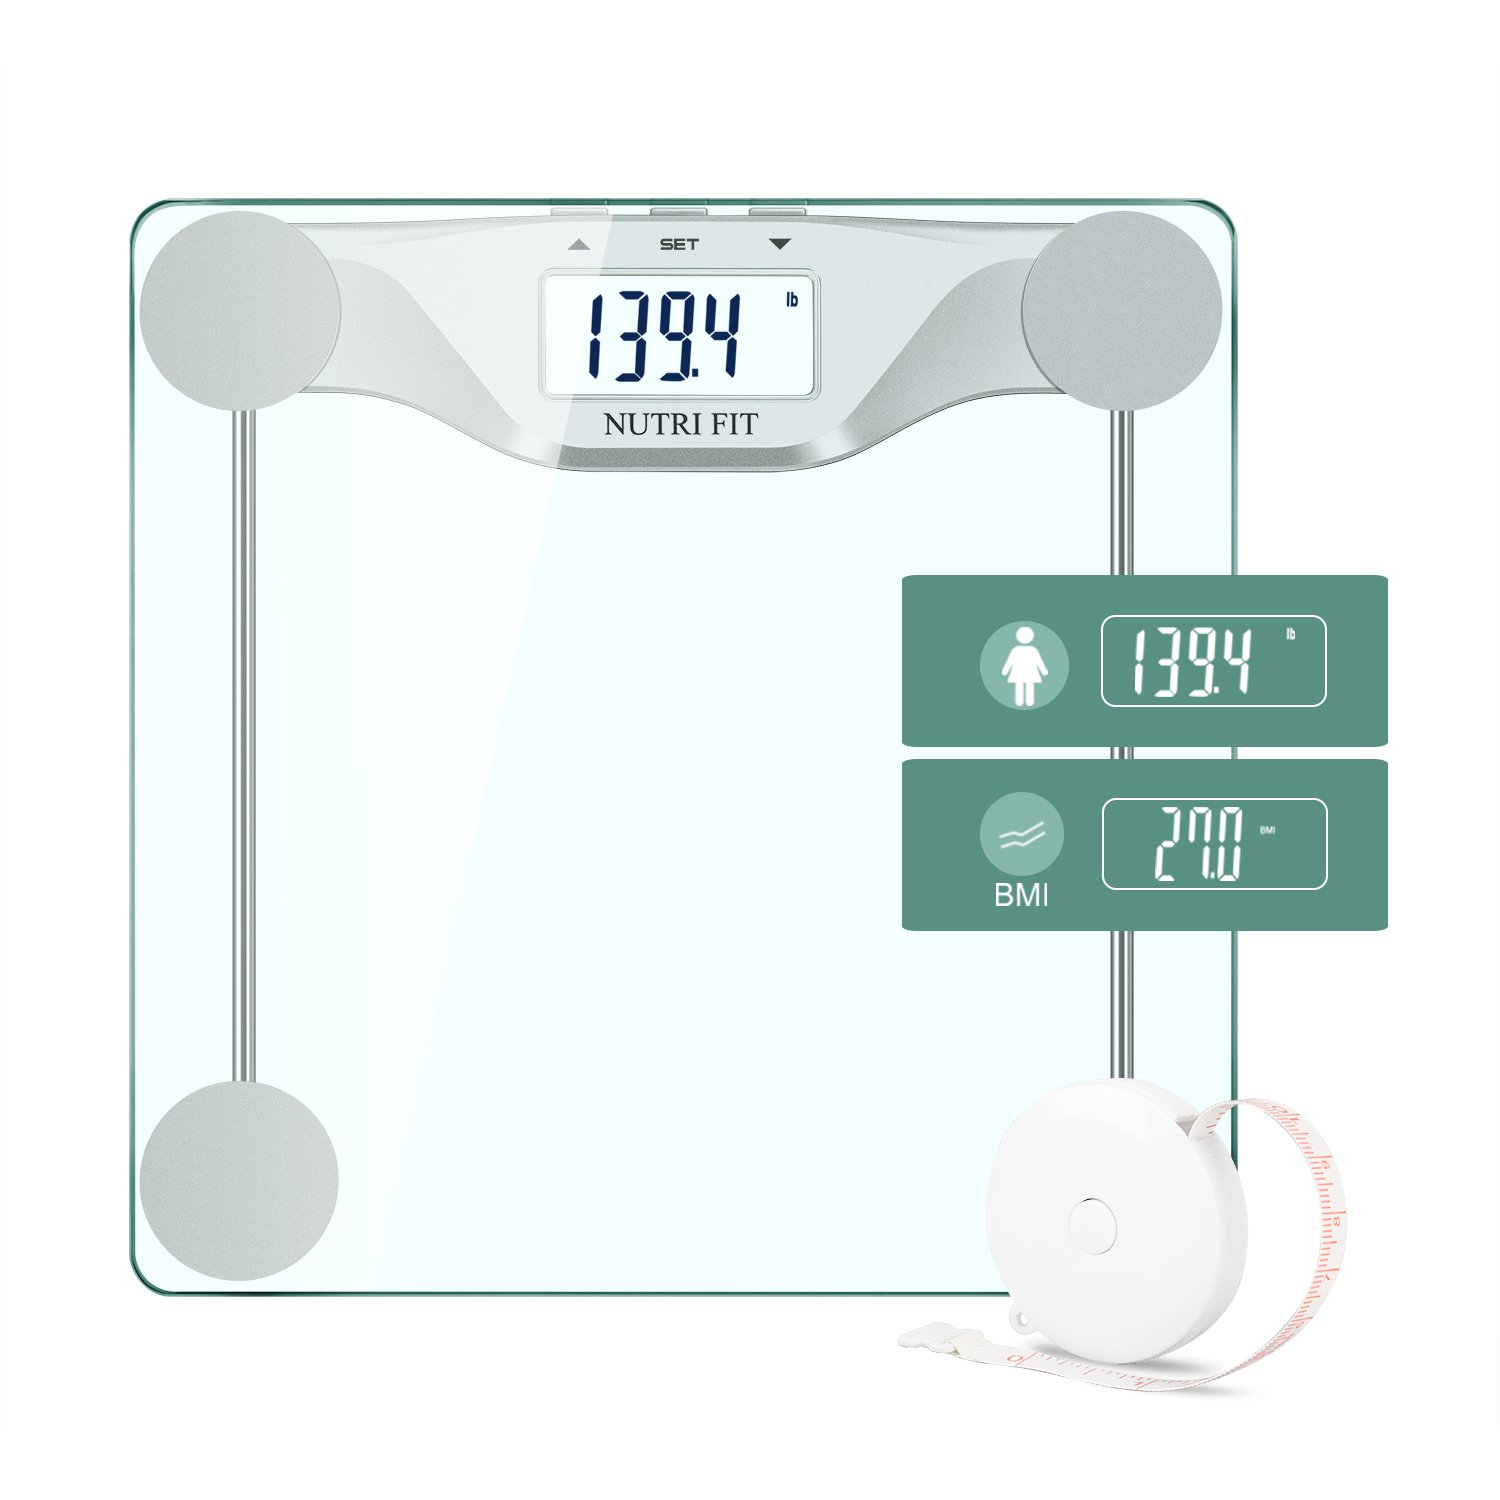 Digital Body Weight Bathroom Scale BMI, Accurate Weight Measurements Scale,Large Backlight Display and Step-On Technology,400 Pounds,Body Tape Measure Included NUTRI FIT EB9083H-NF-SS